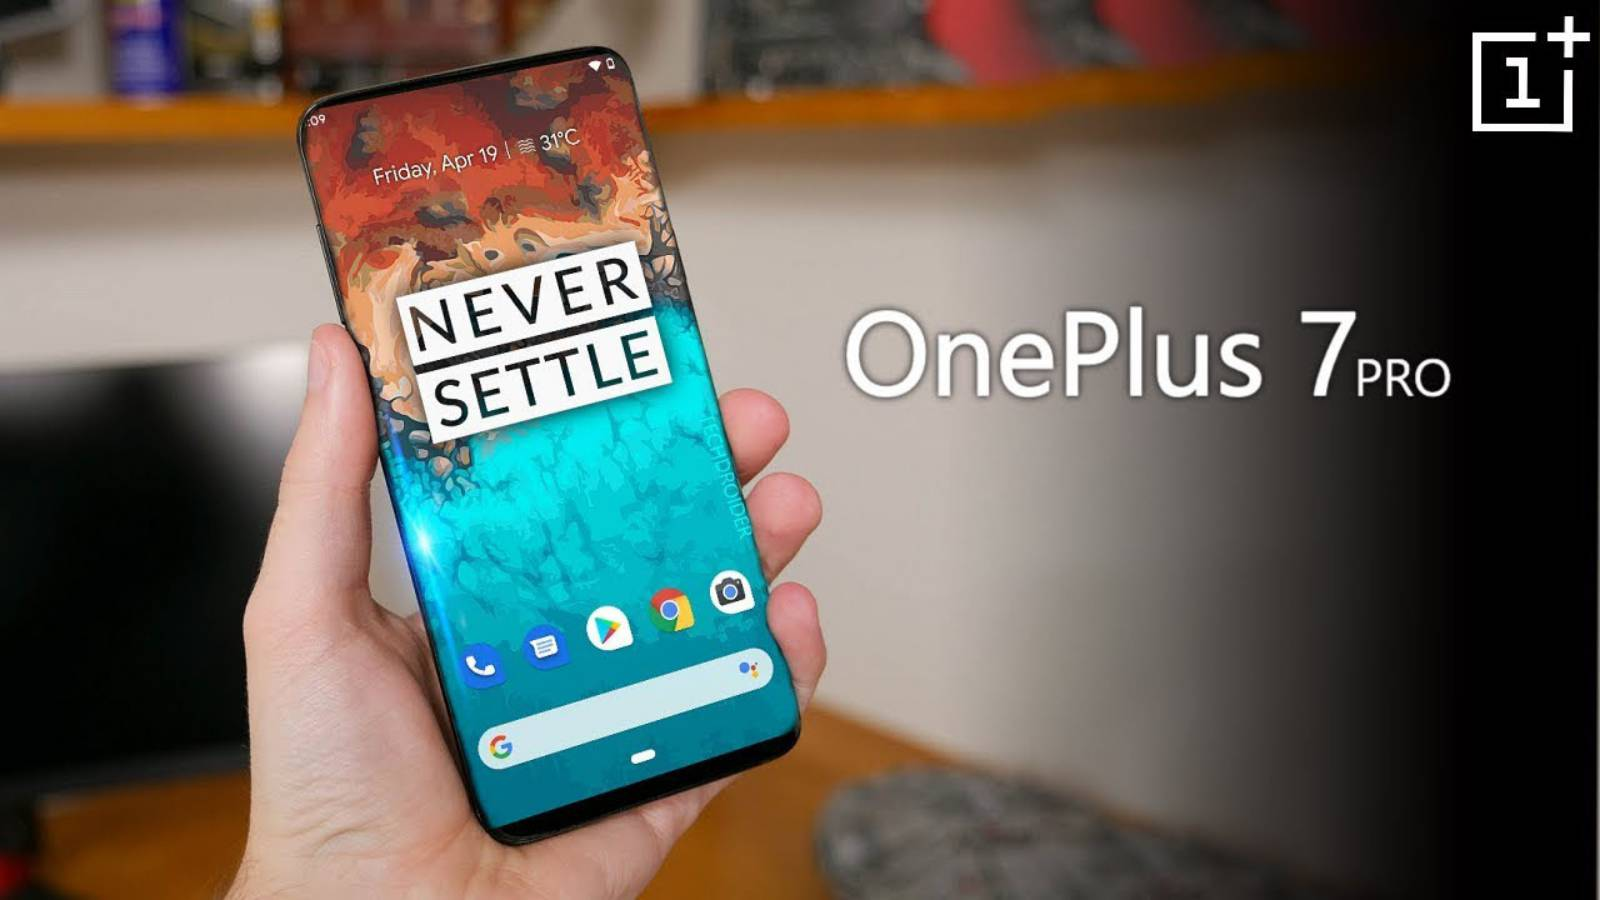 OnePlus 7 specificatii 7 PRO complet